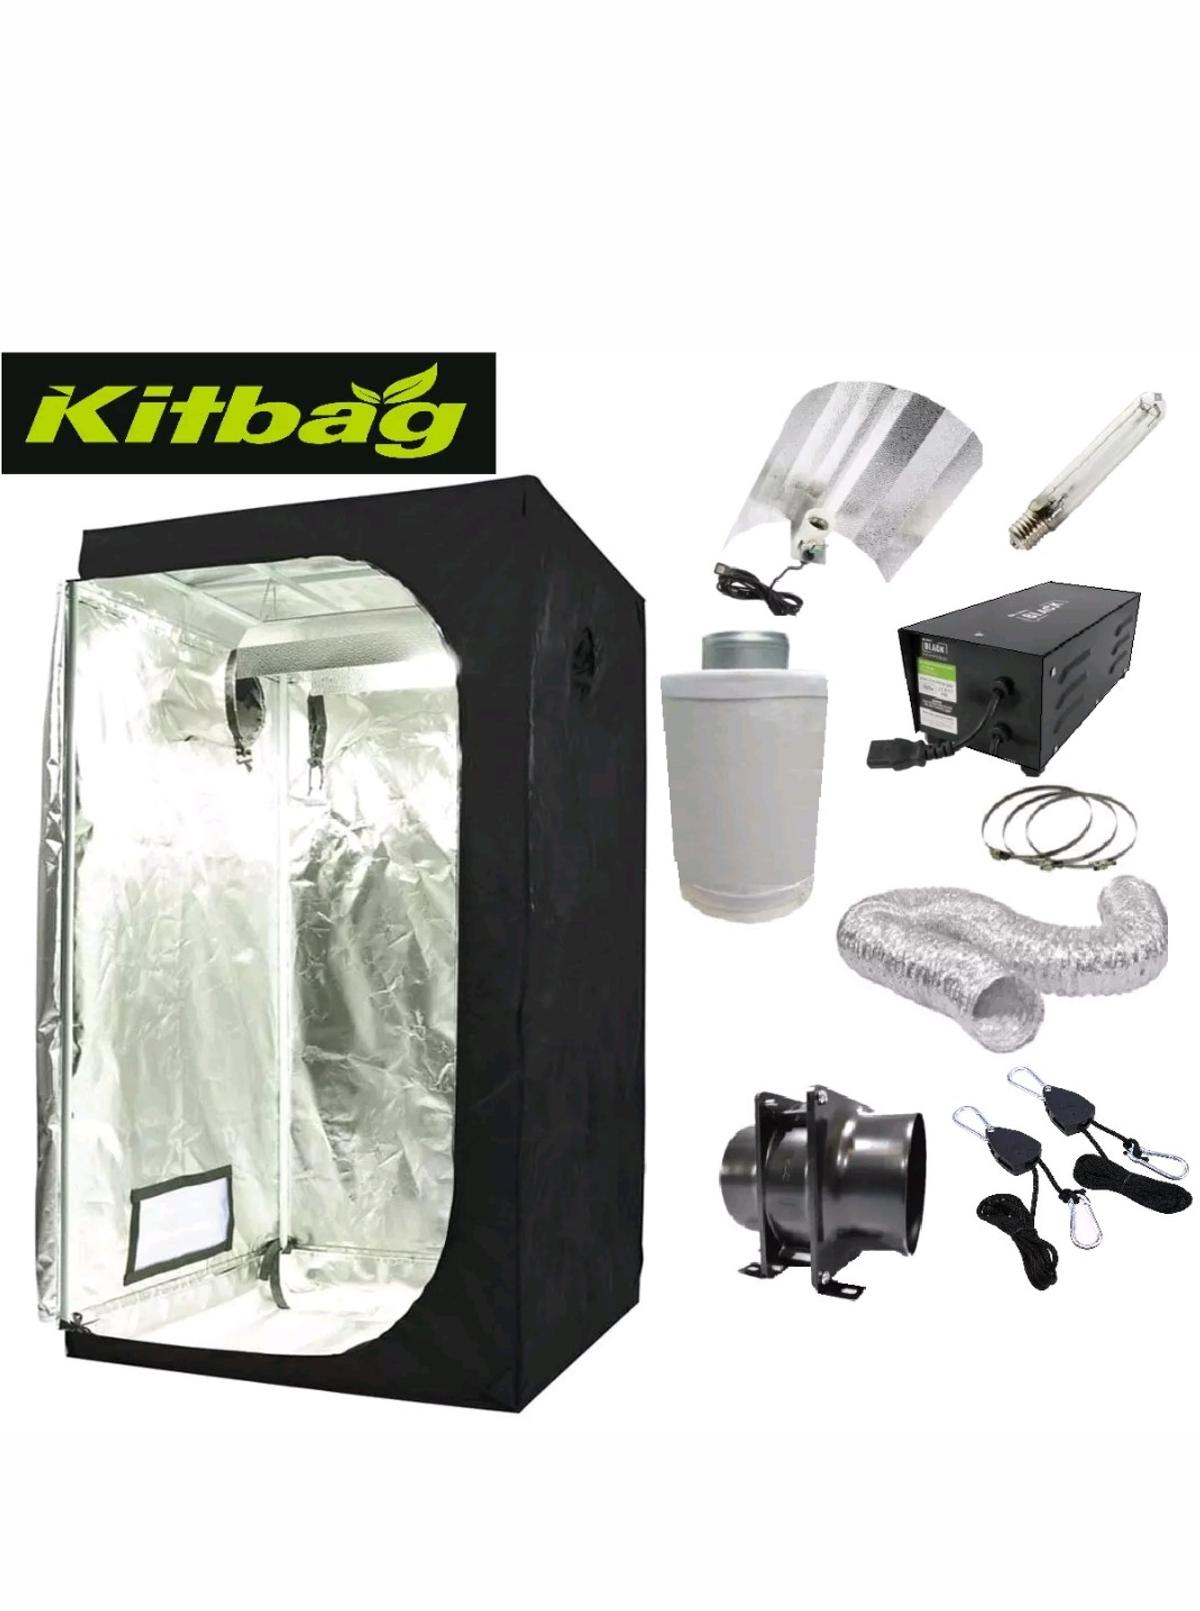 Complete grow tent kit in Northampton for £130 00 for sale